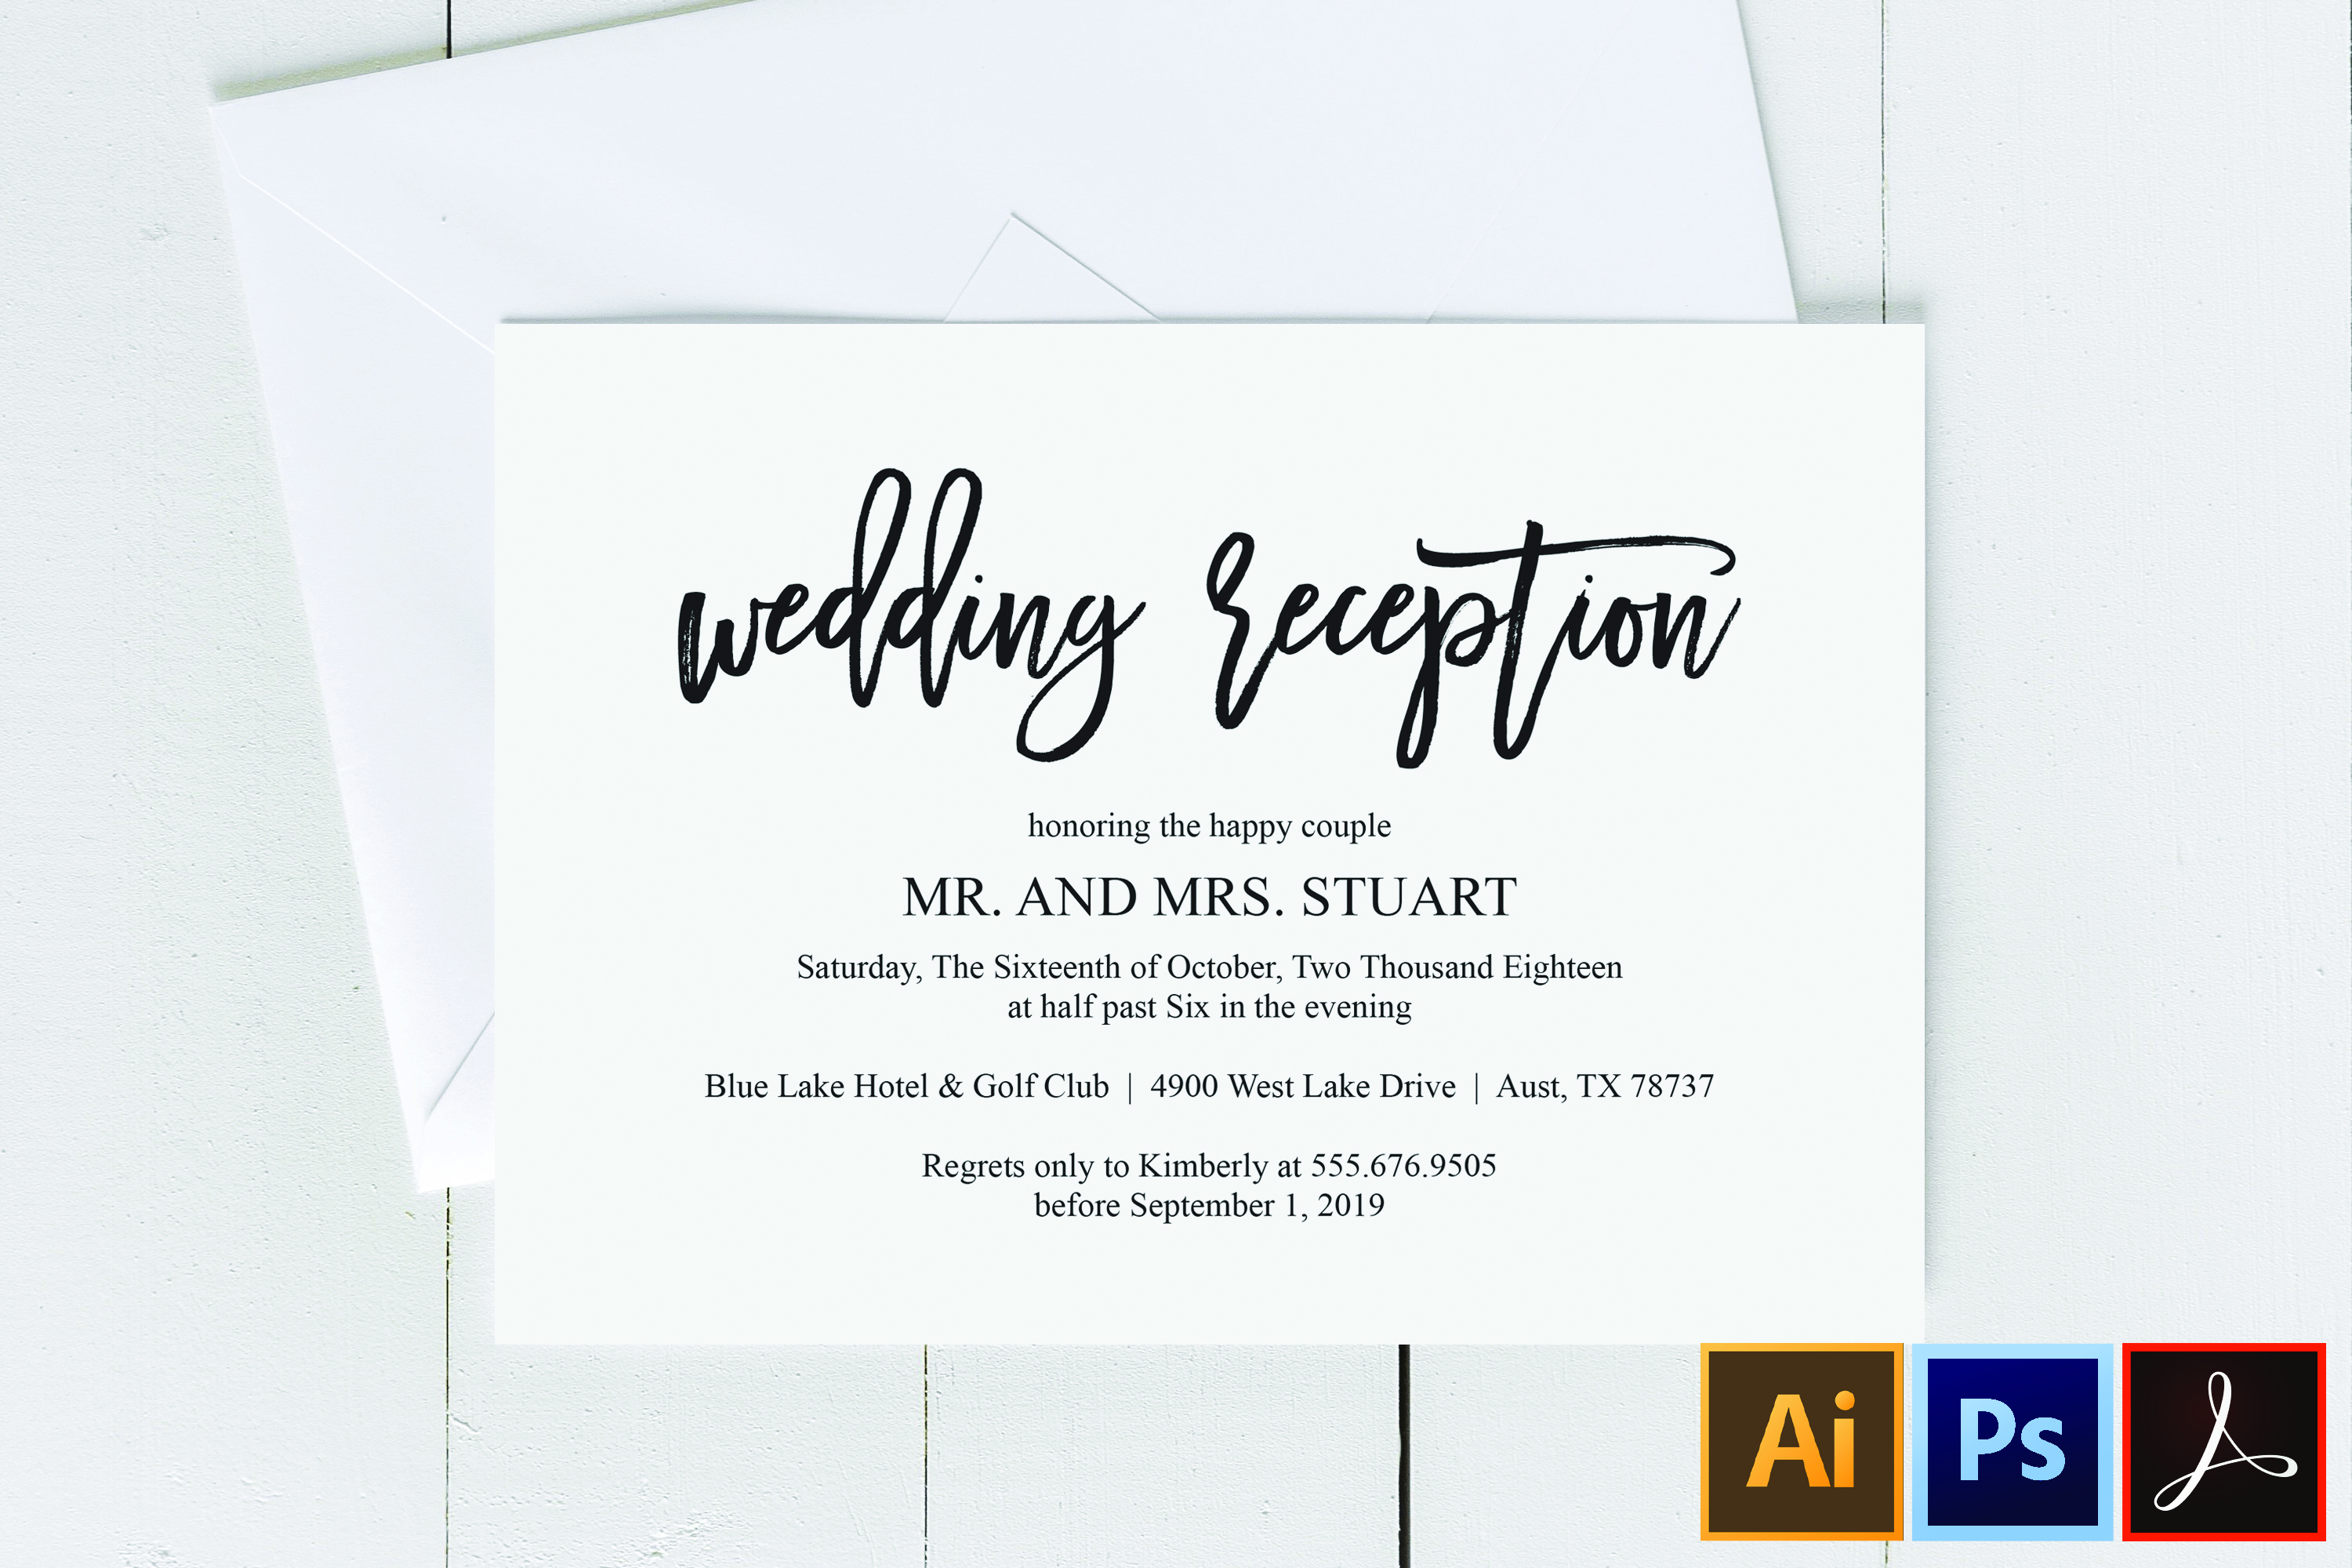 Wedding Reception Invitation Card Pdf Editable Template